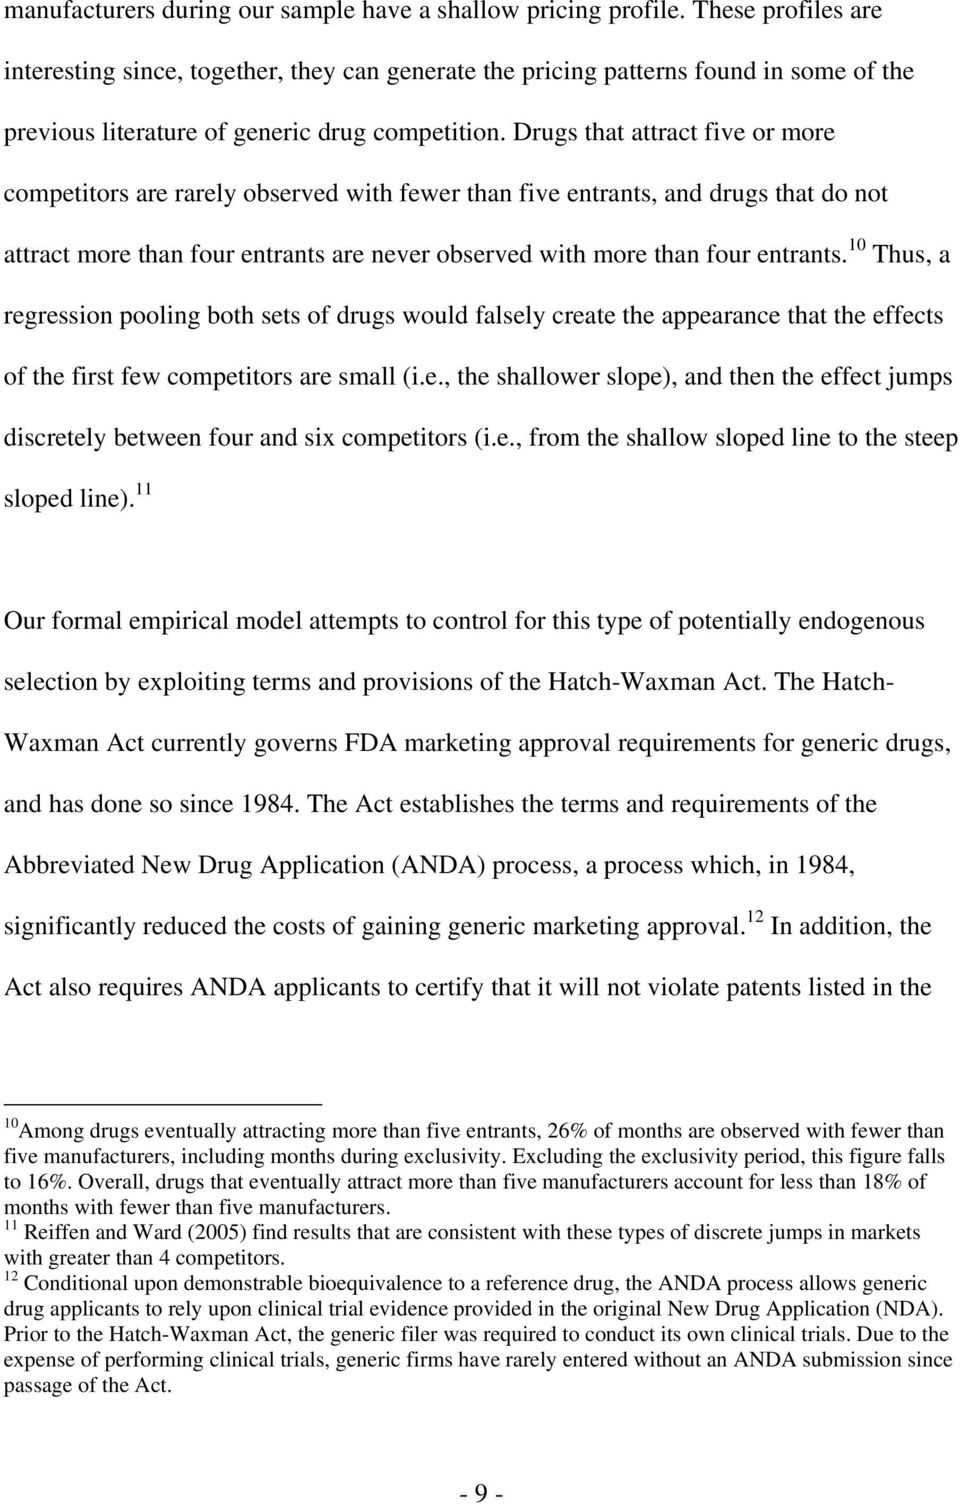 Drugs that attract five or more competitors are rarely observed with fewer than five entrants, and drugs that do not attract more than four entrants are never observed with more than four entrants.